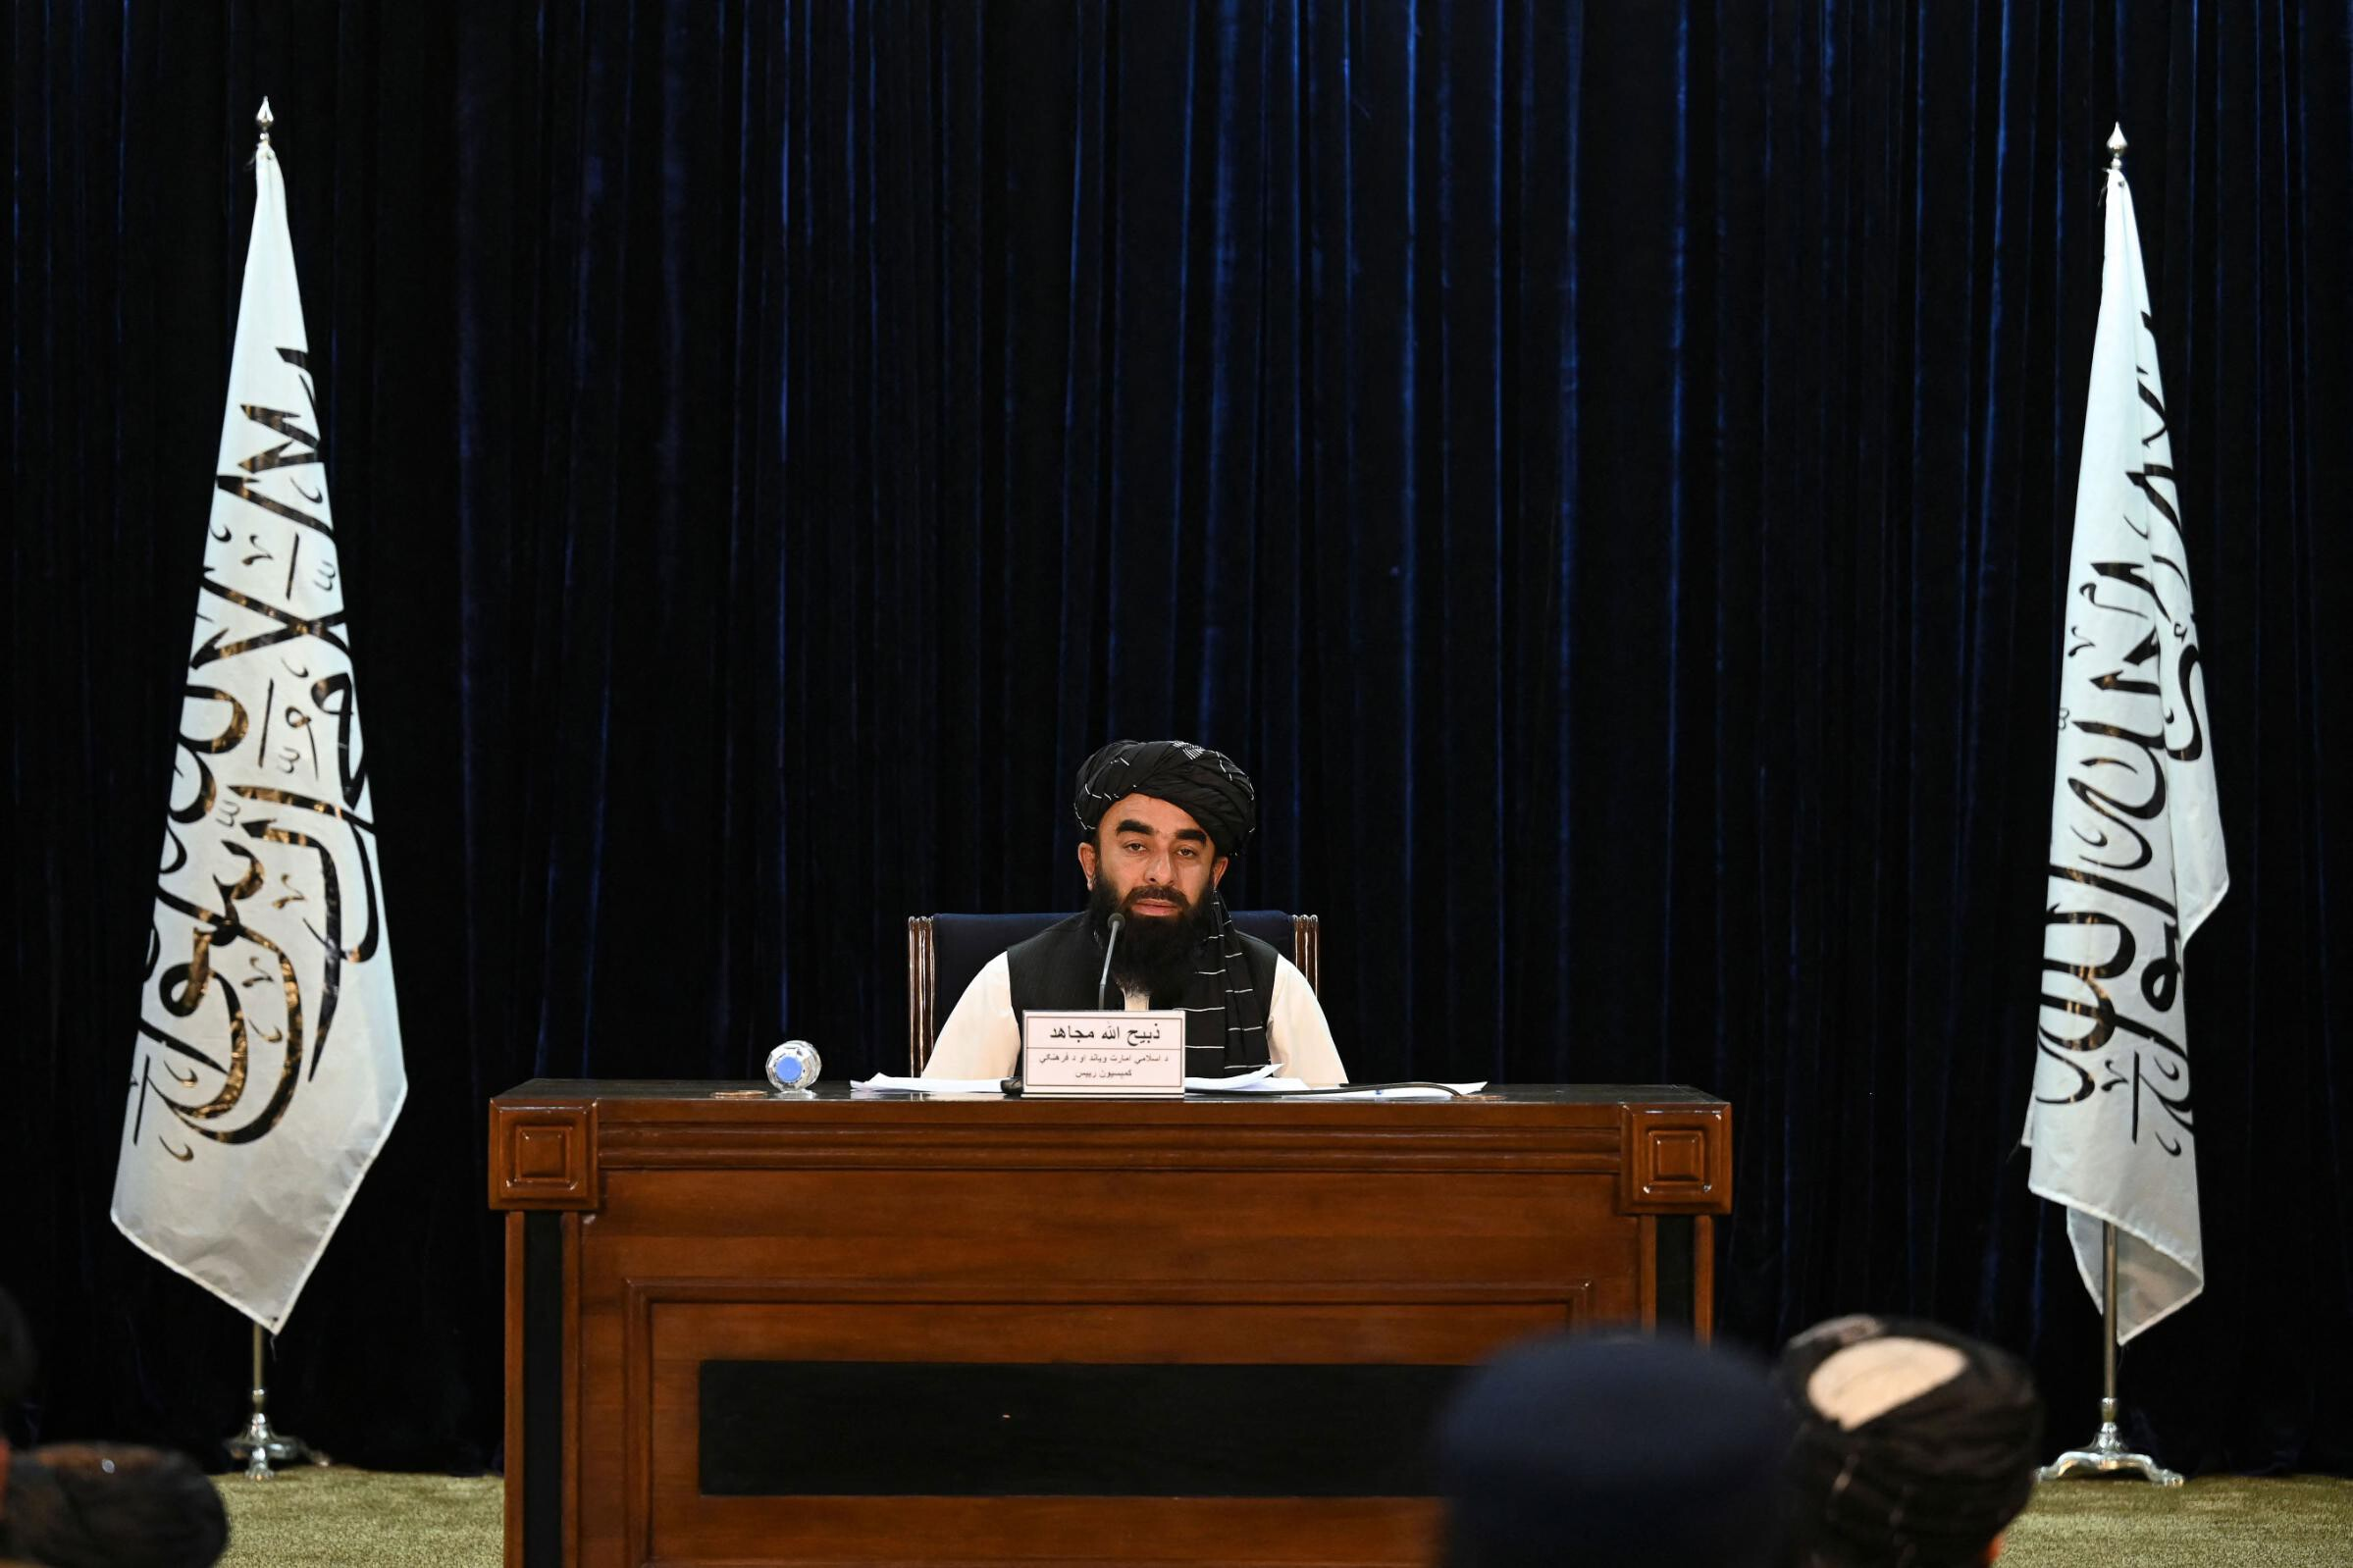 <i>Aamir Qureshi/AFP/Getty Images</i><br/>The Taliban have denied claims that Afghan women would be banned from secondary schools after calling on boys